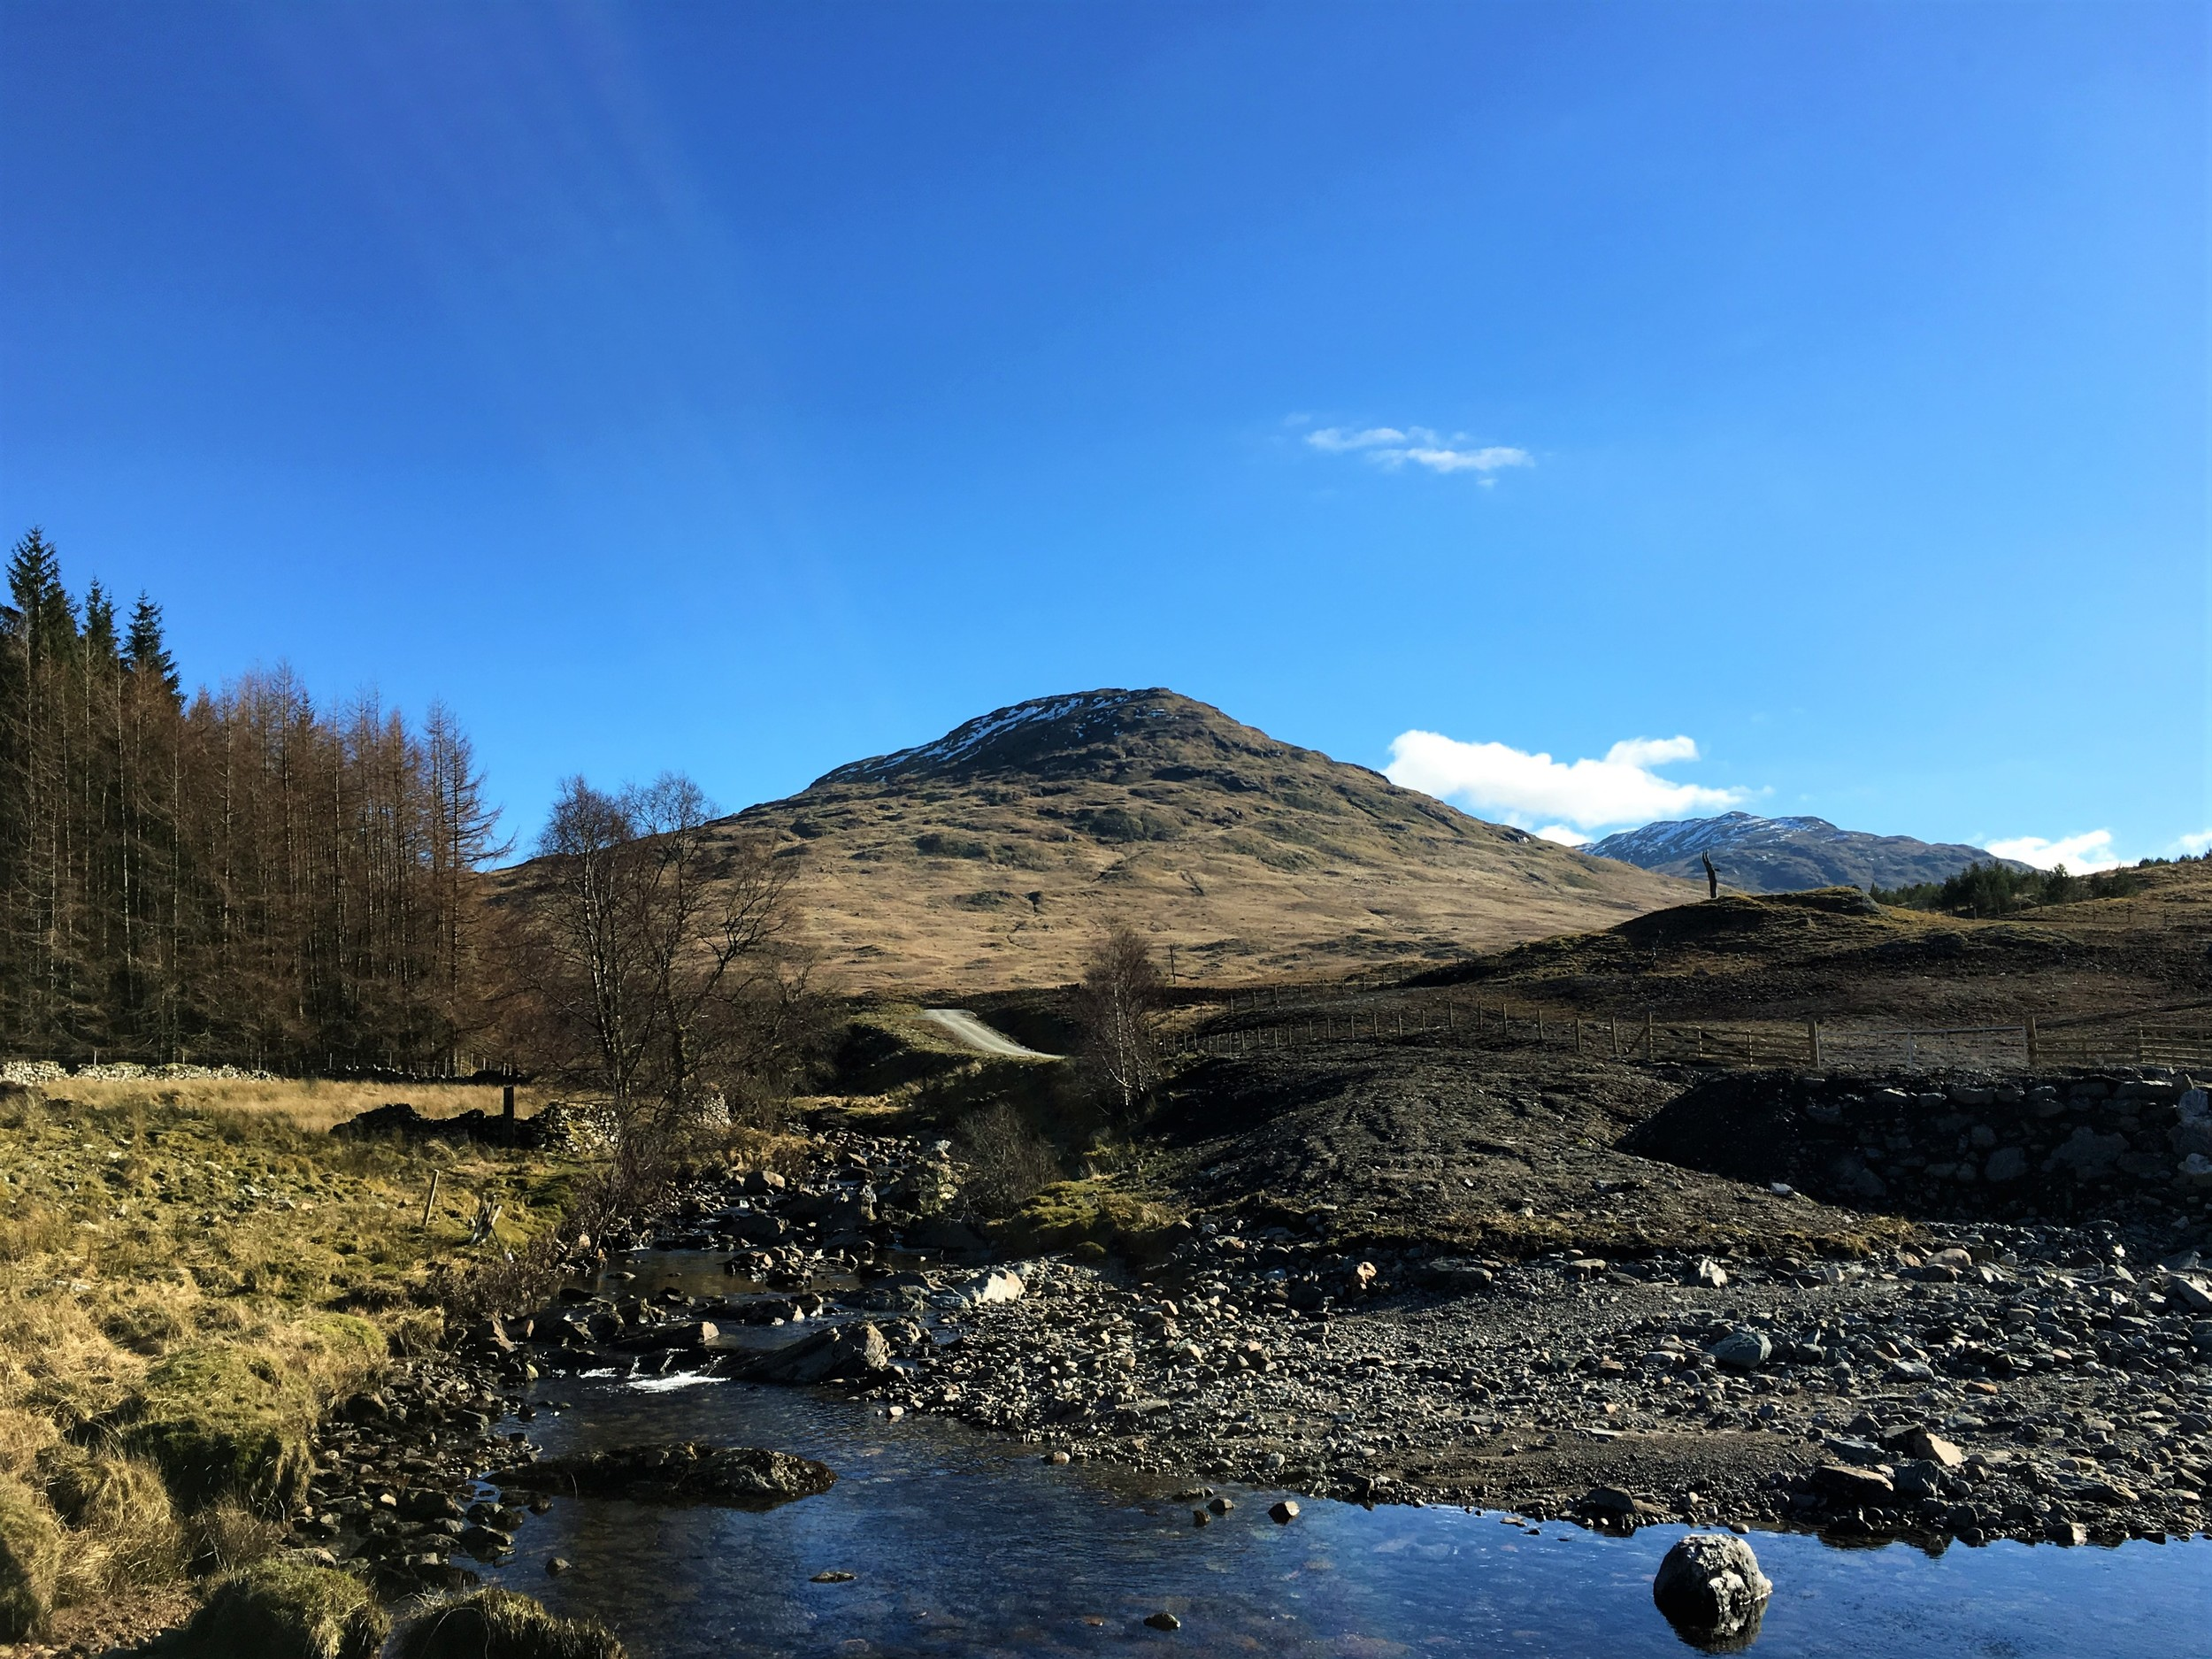 Sron Gharbh just south of Crianlarich produces some great walking and isn't far from the old Caledonian Pine Forest